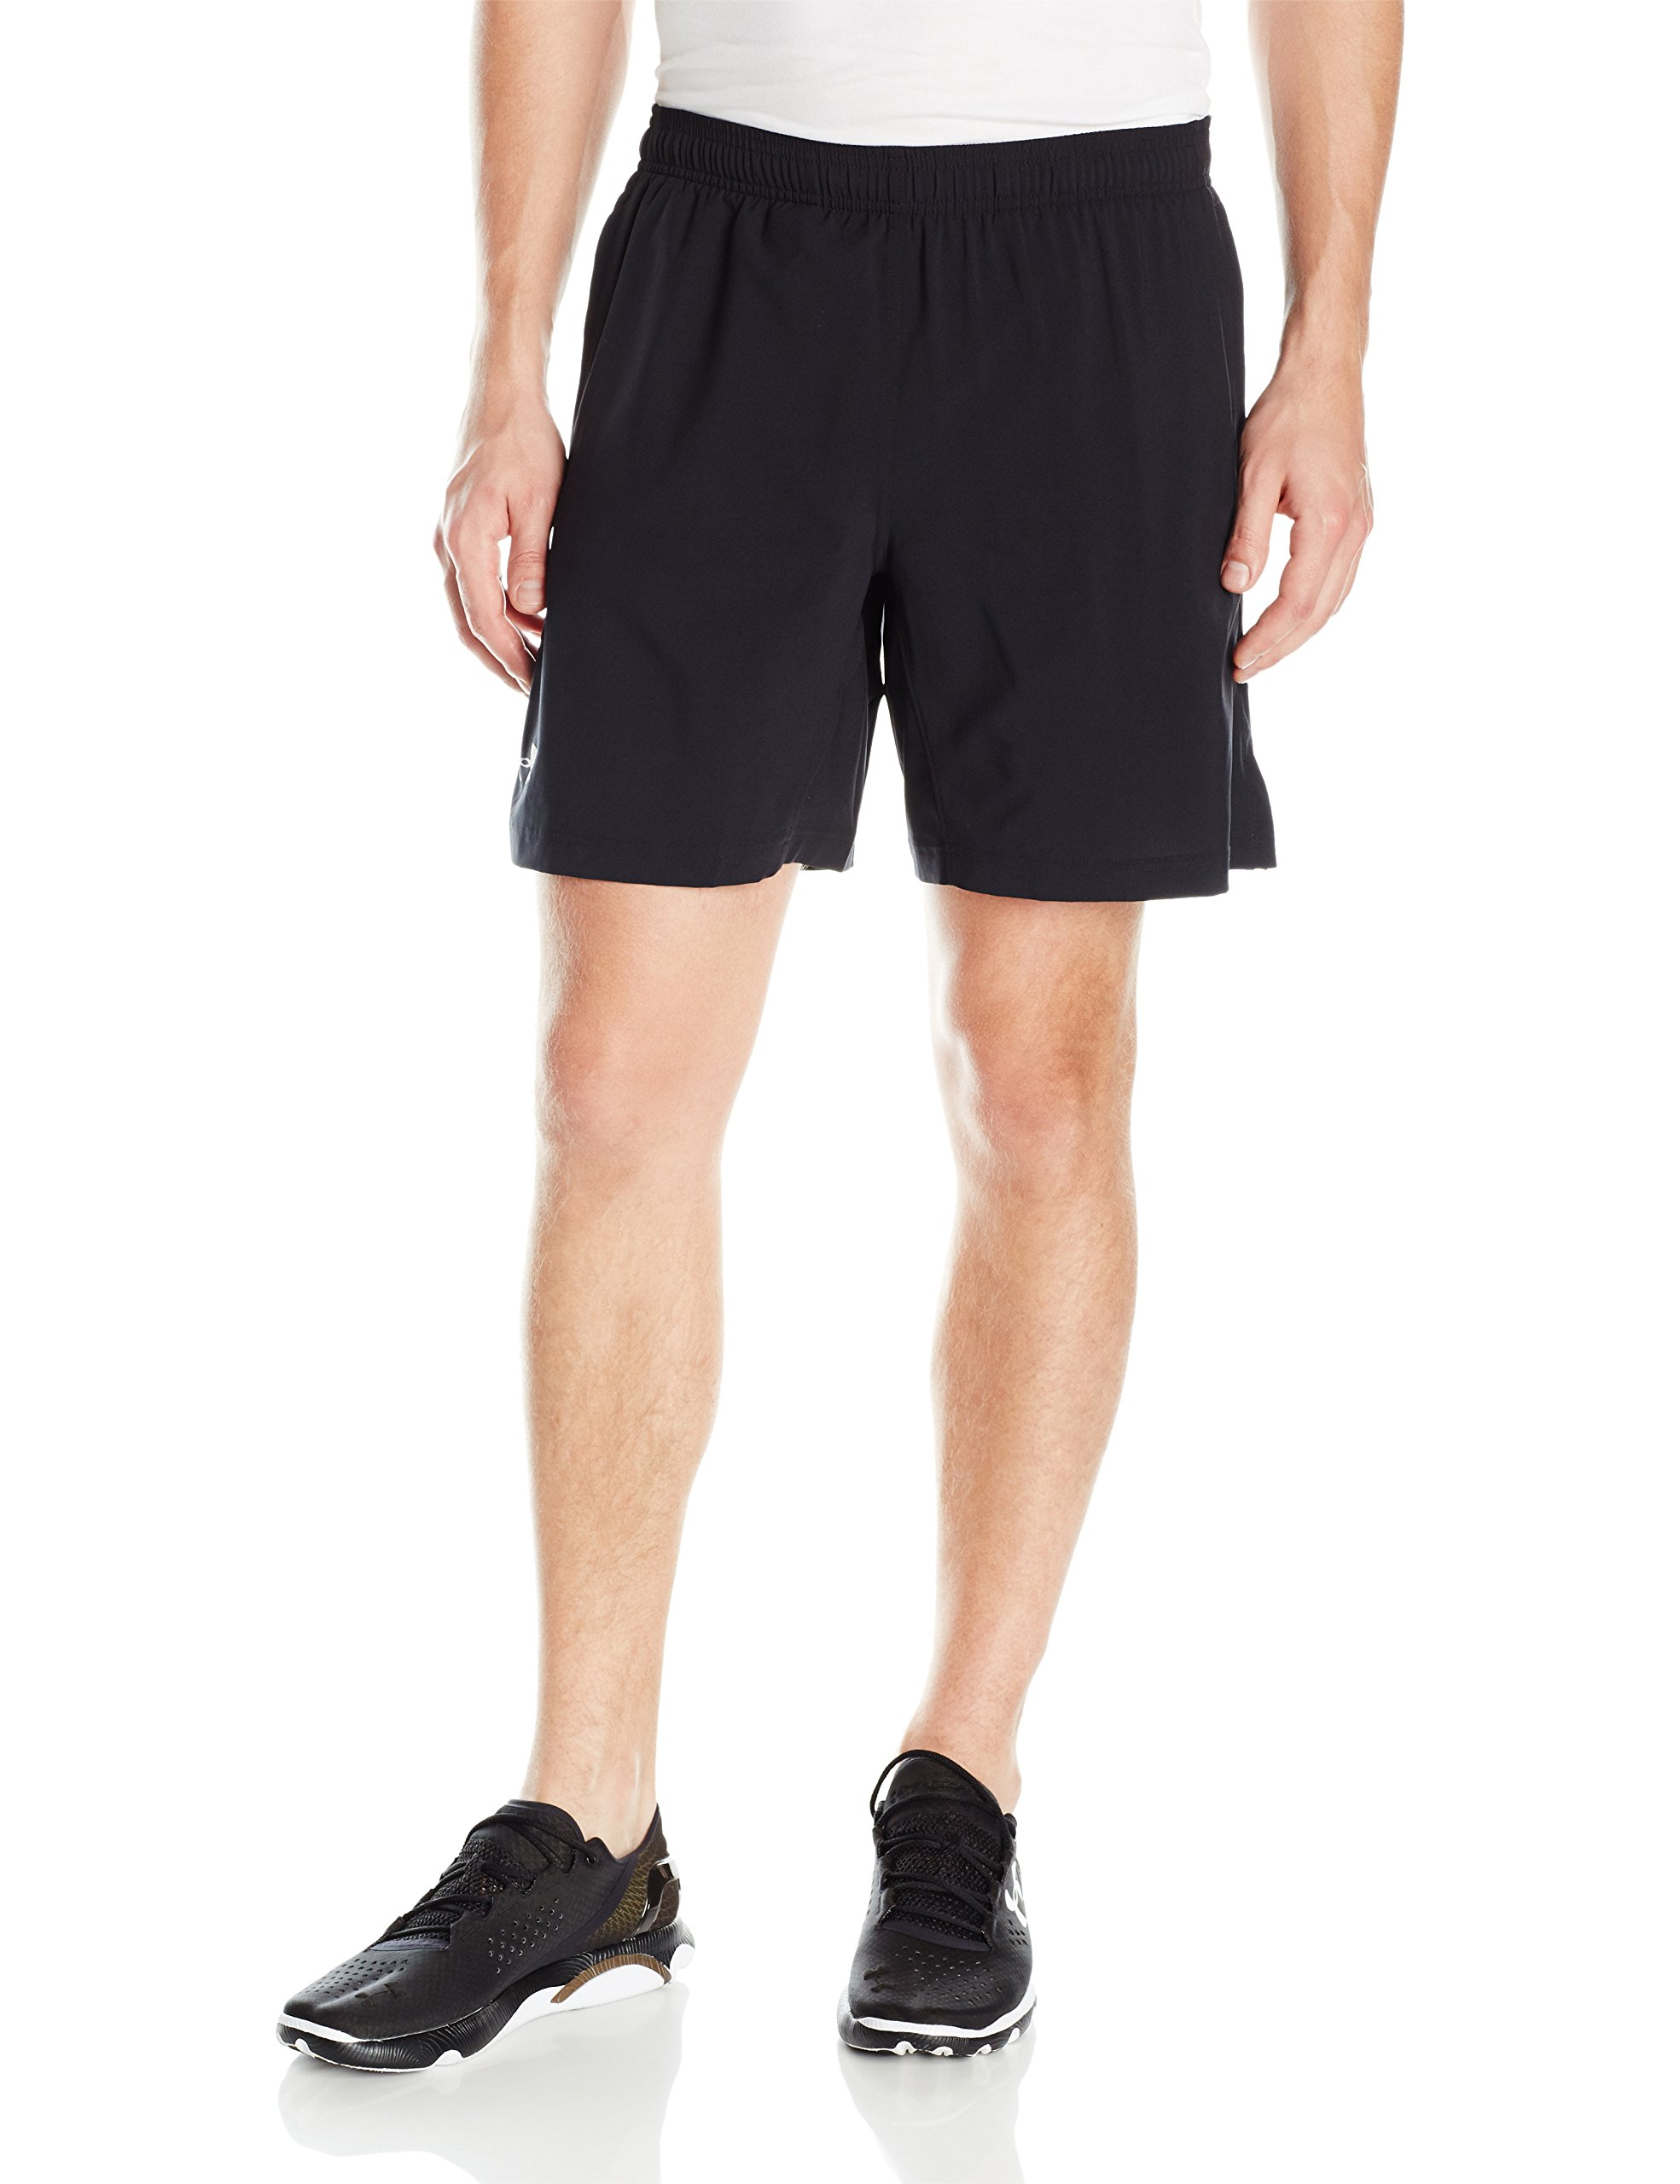 Under Armour Men's Launch 2-in-1 Shorts, Black (001)/Reflective, Small